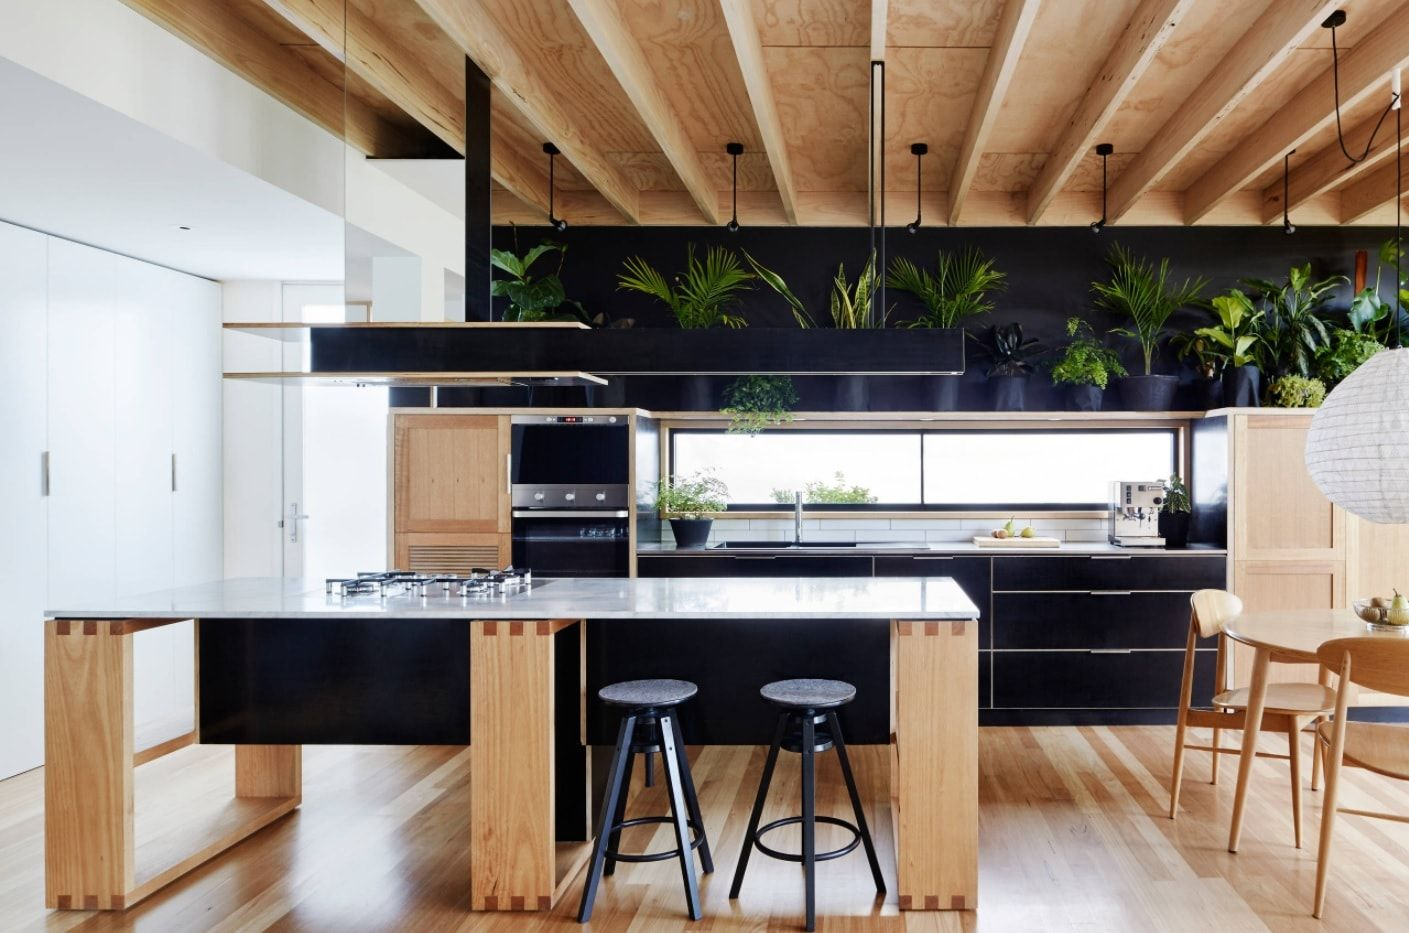 designed black and wooden white finishing of the hi-tech and loft styled space